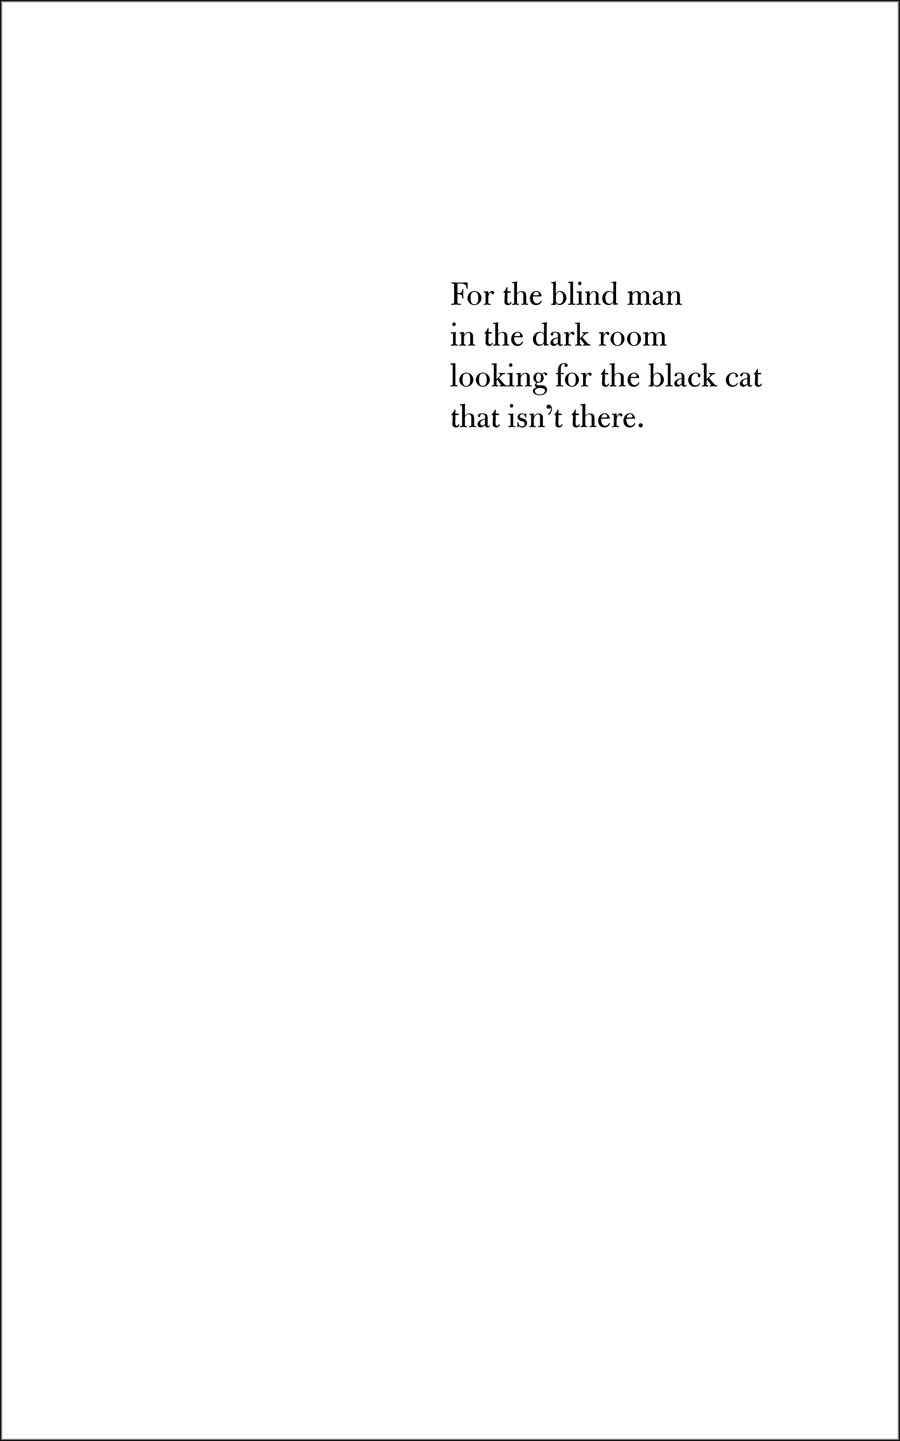 For The Blind Man In The Dark Room Looking For The Black Cat That Isn't There PDF